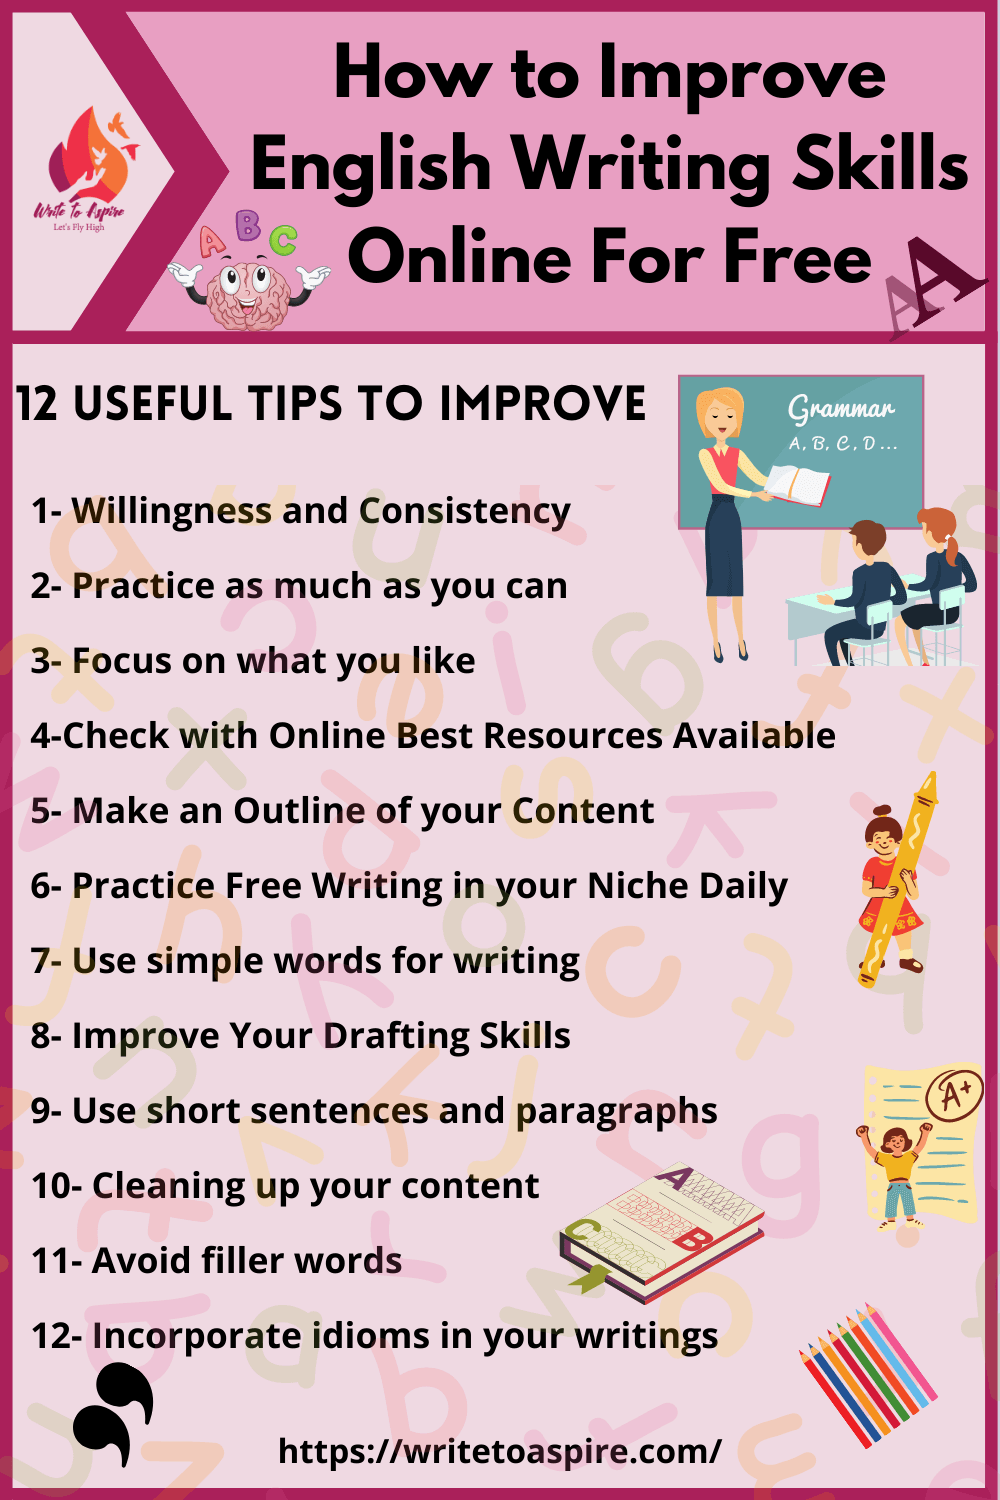 How to Improve English Writing Skills Online For Free- write to aspire